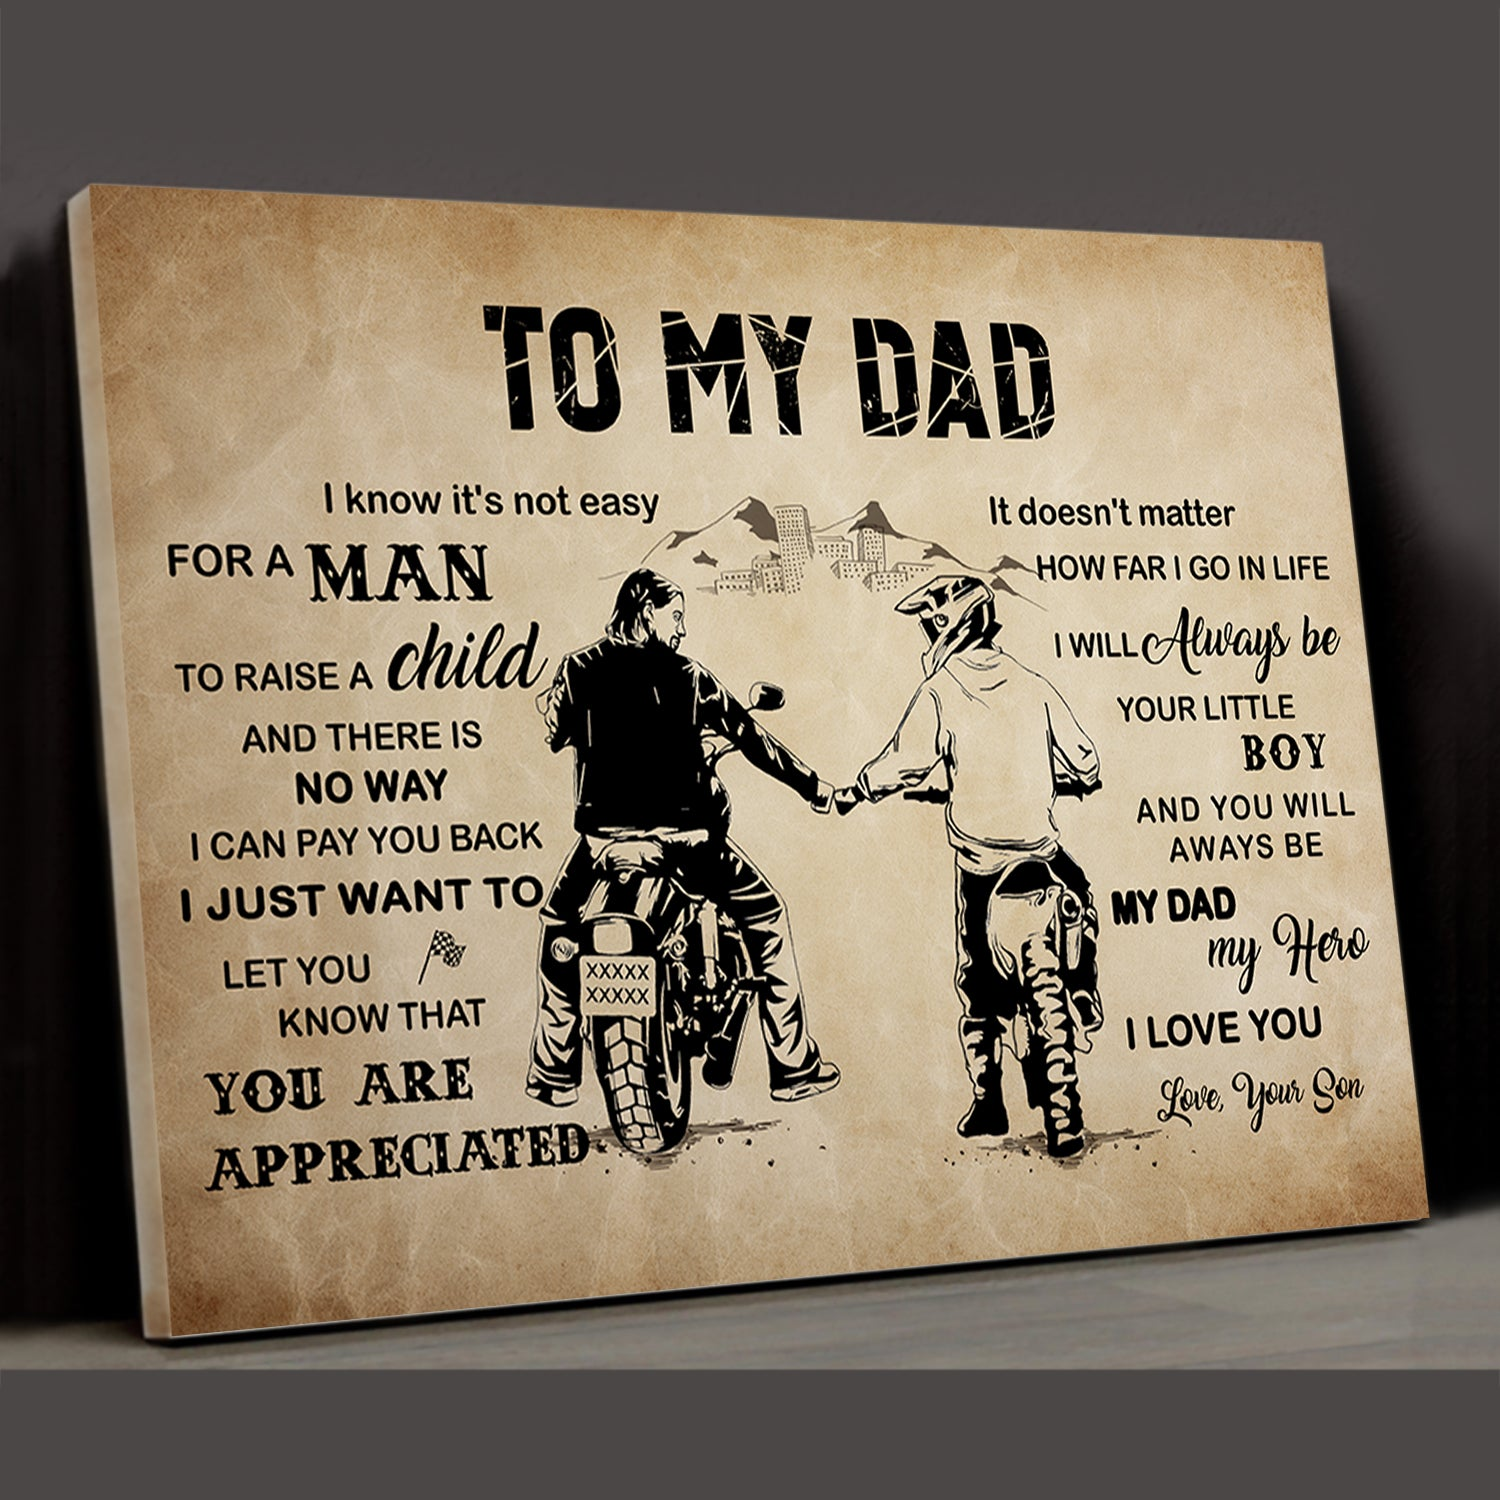 It's Not Easy For A Man To Raise A Child - Matte Canvas - Gift For Dad From Son - Home Wall Art Decor - 367